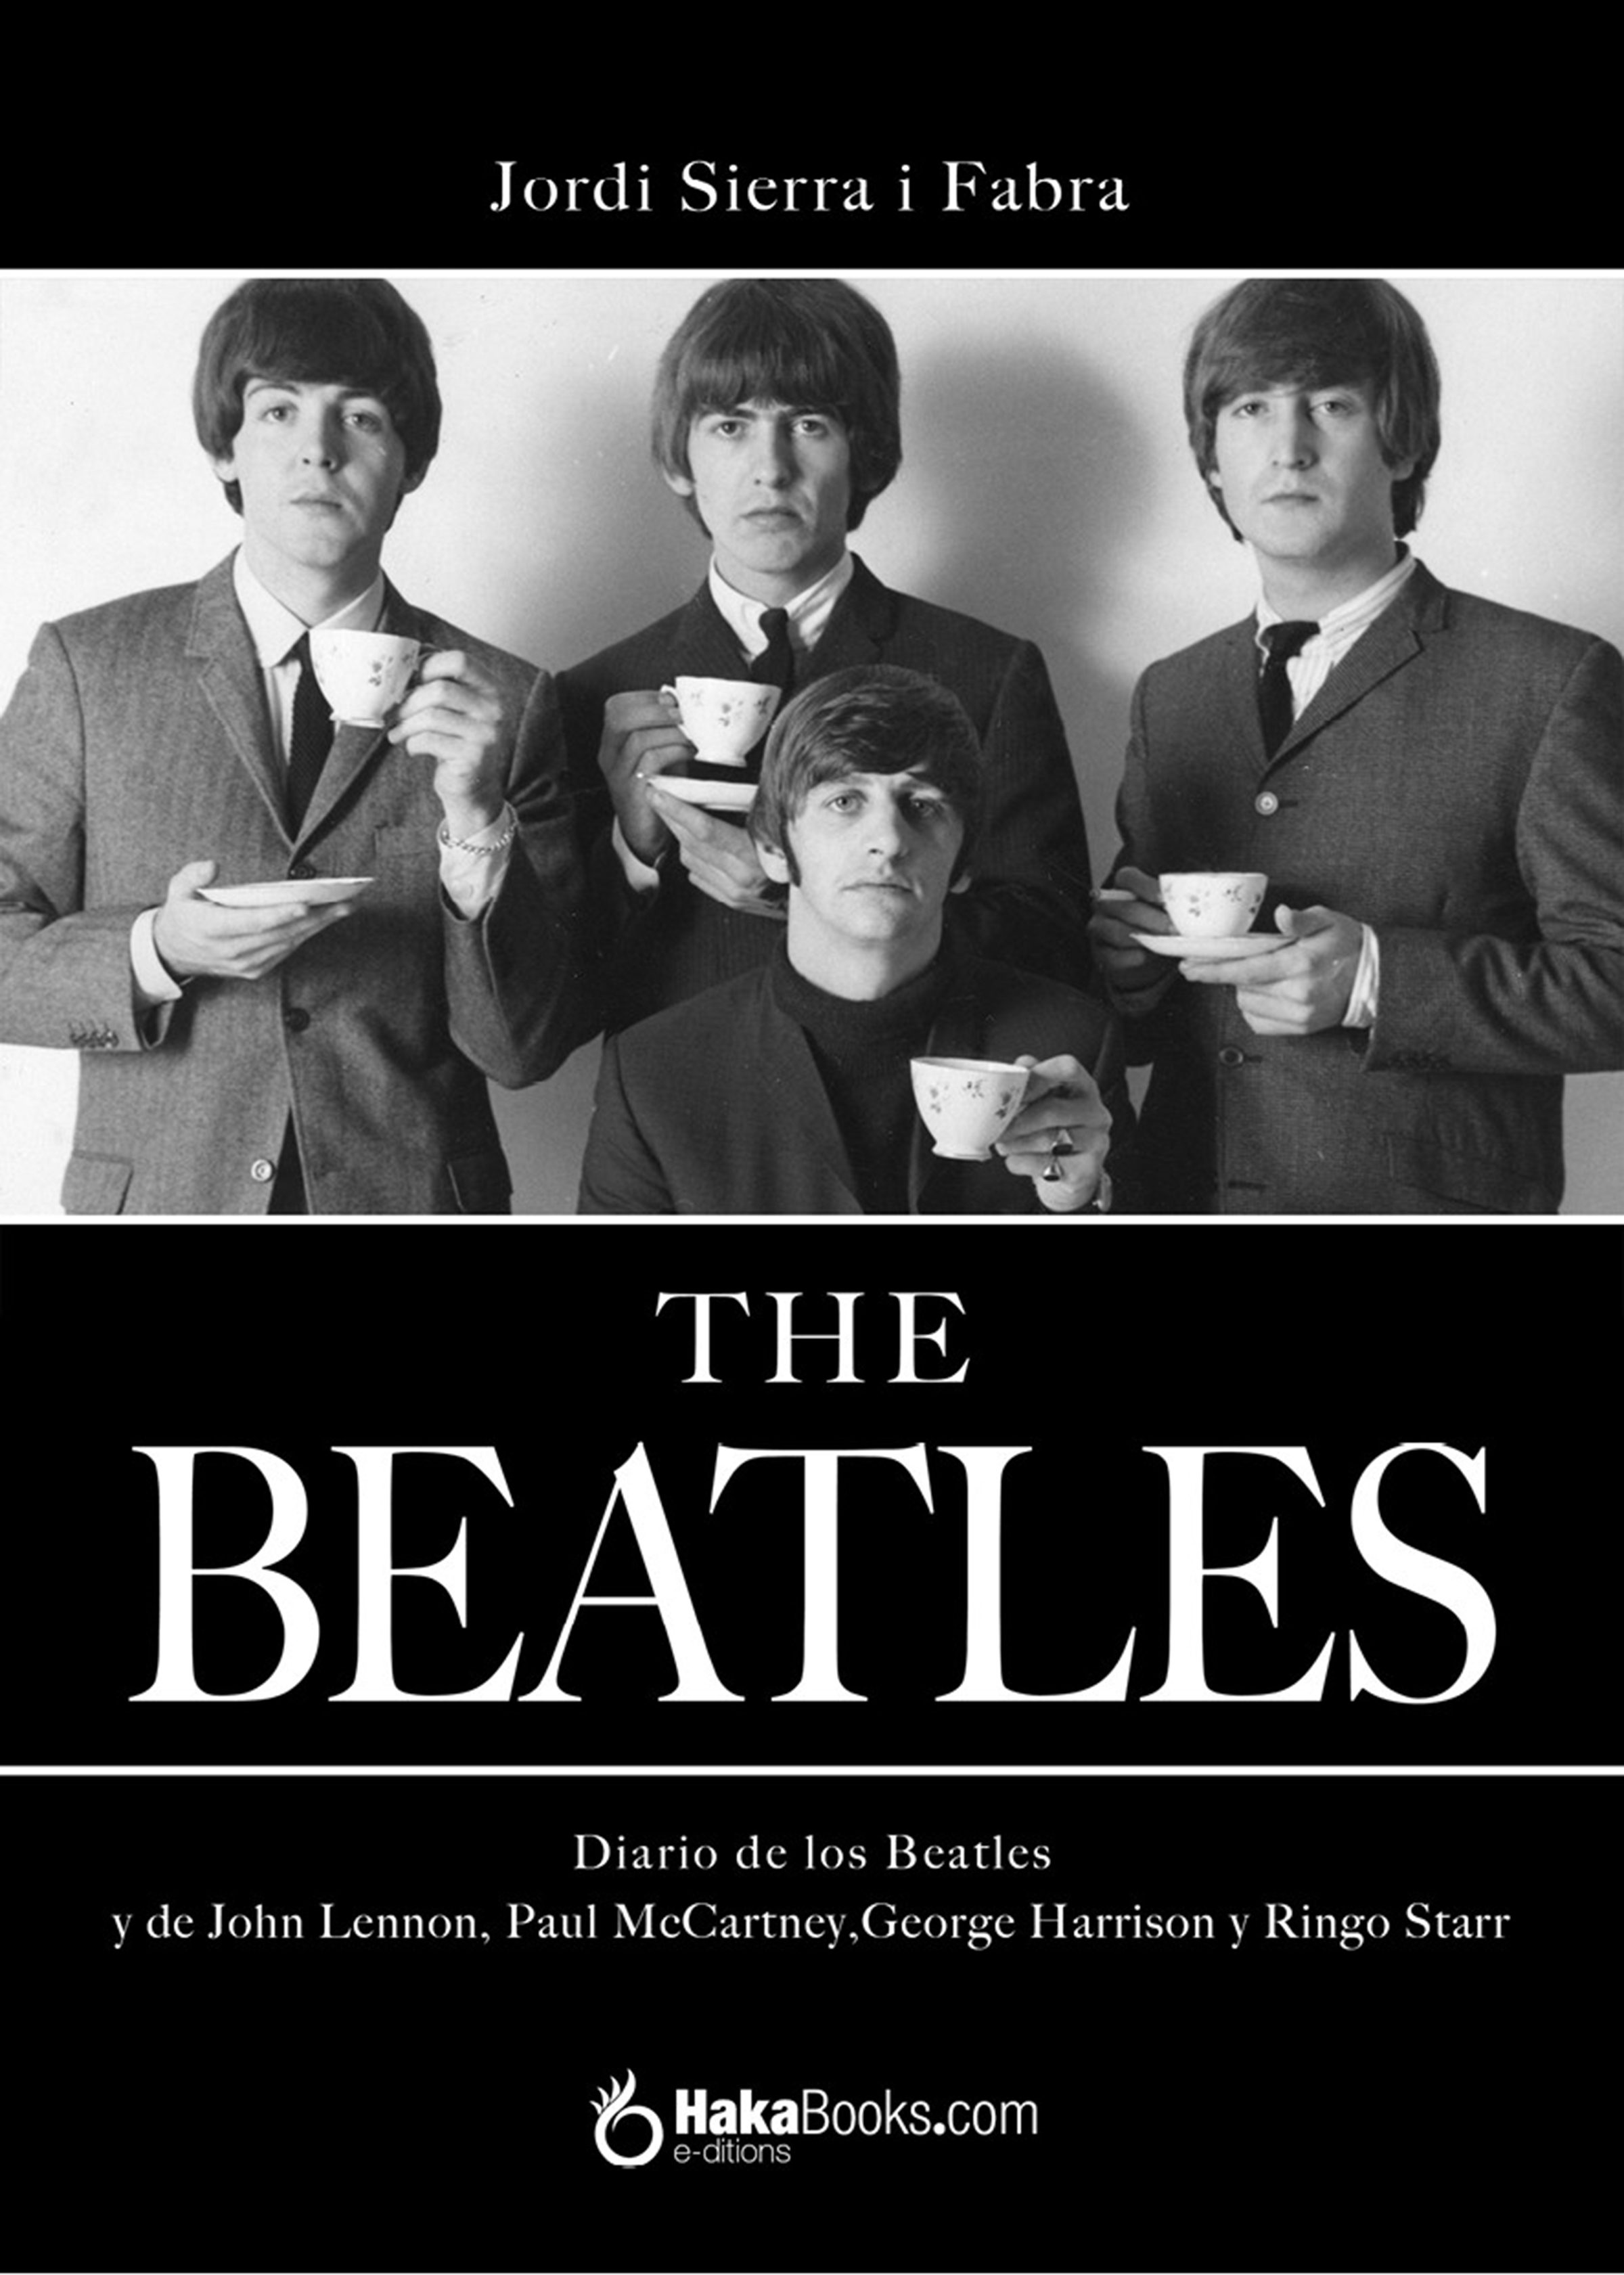 Libros Beatles Diario De Los Beatles Ebook Jordi Sierra I Fabra